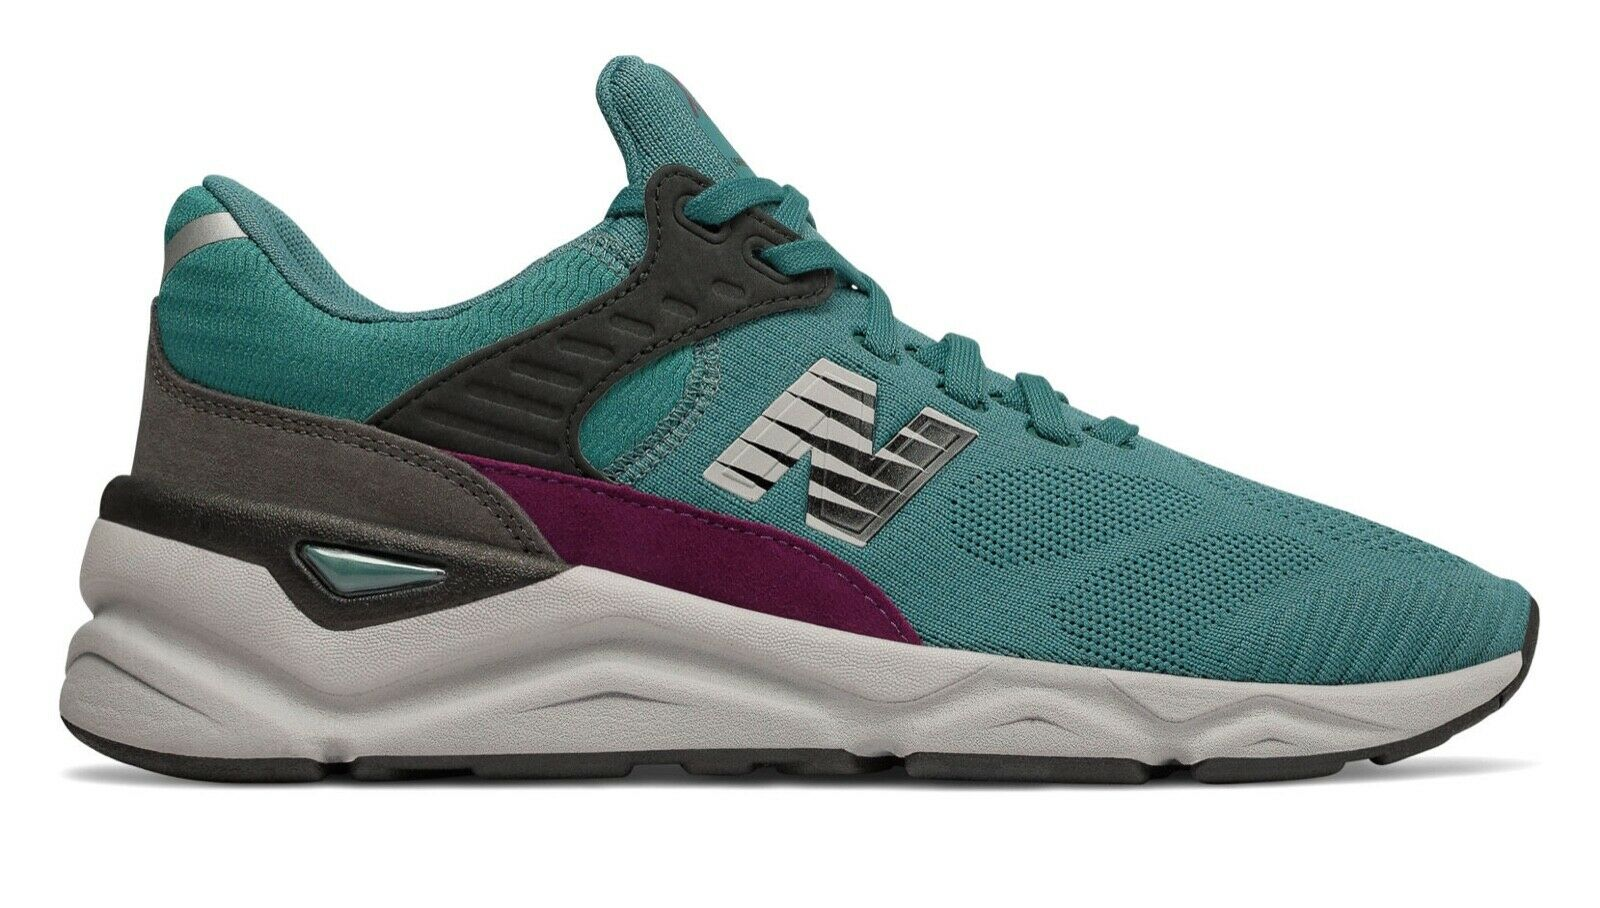 Brand new New Balance X-90 bluee Turquoise Runing Casual shoes Sz9 +FREE shipping